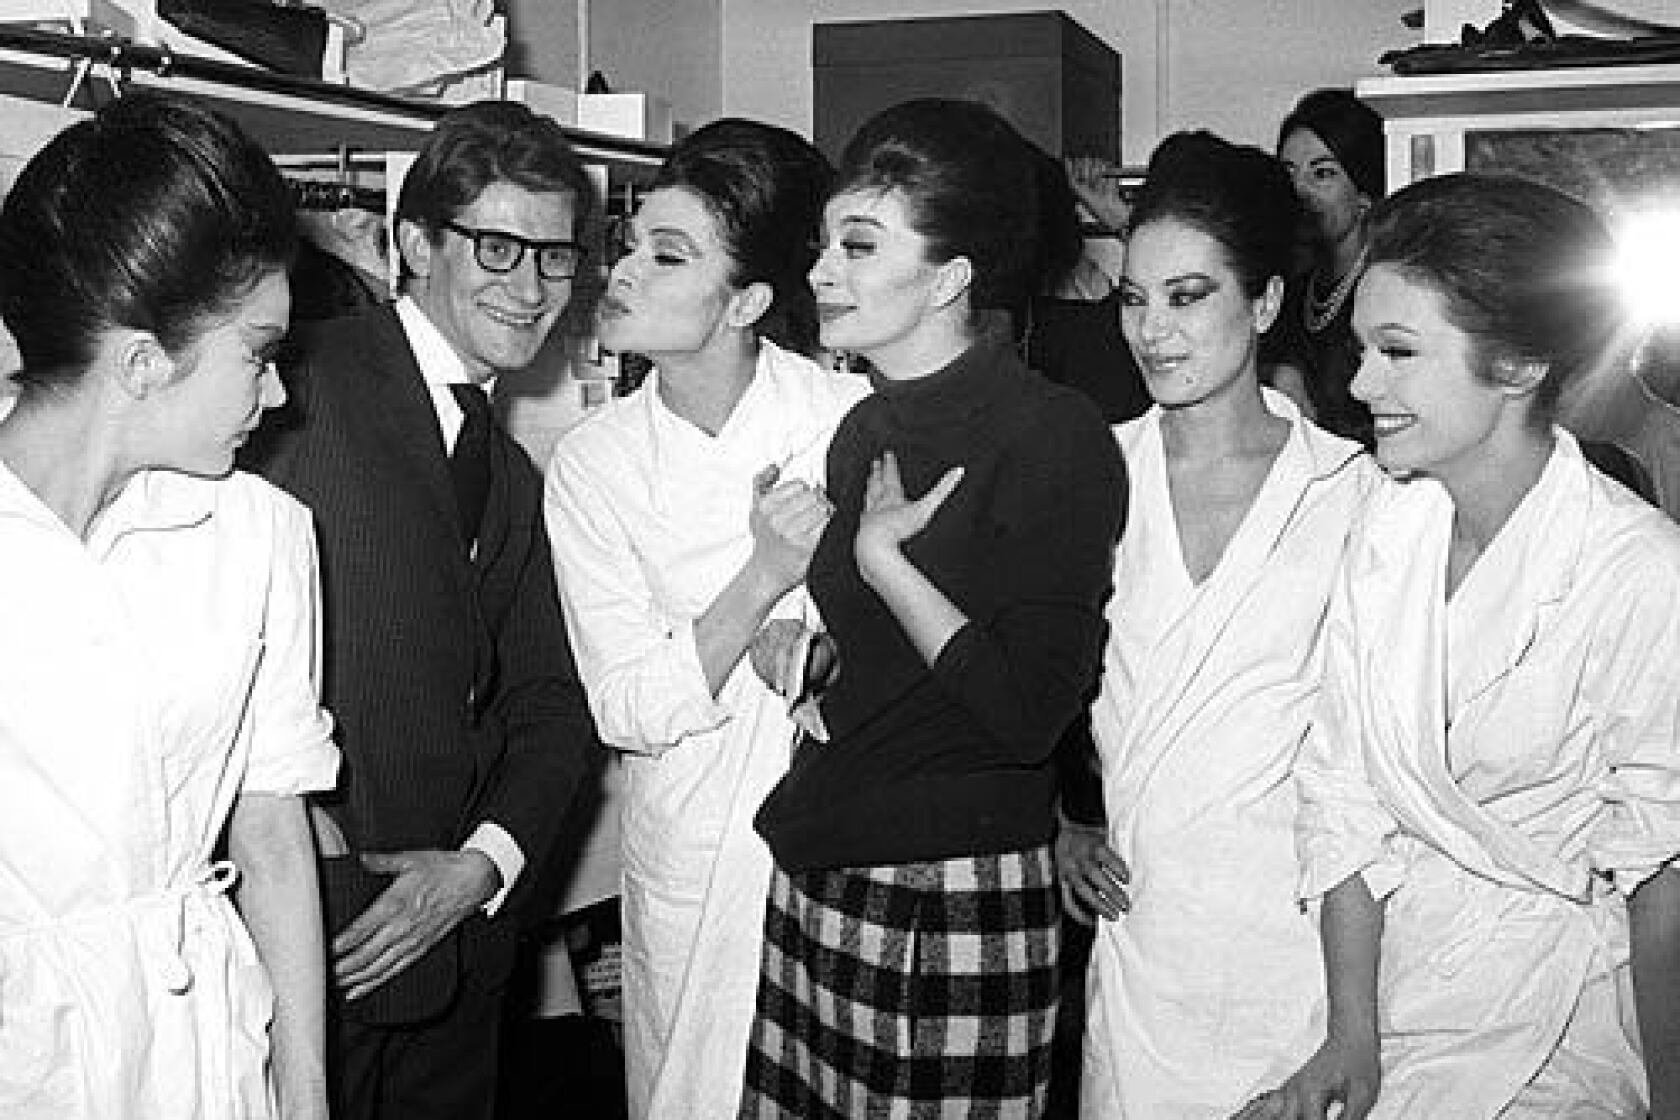 Yves Saint Laurent 71 Icon Of French Fashion Design Los Angeles Times